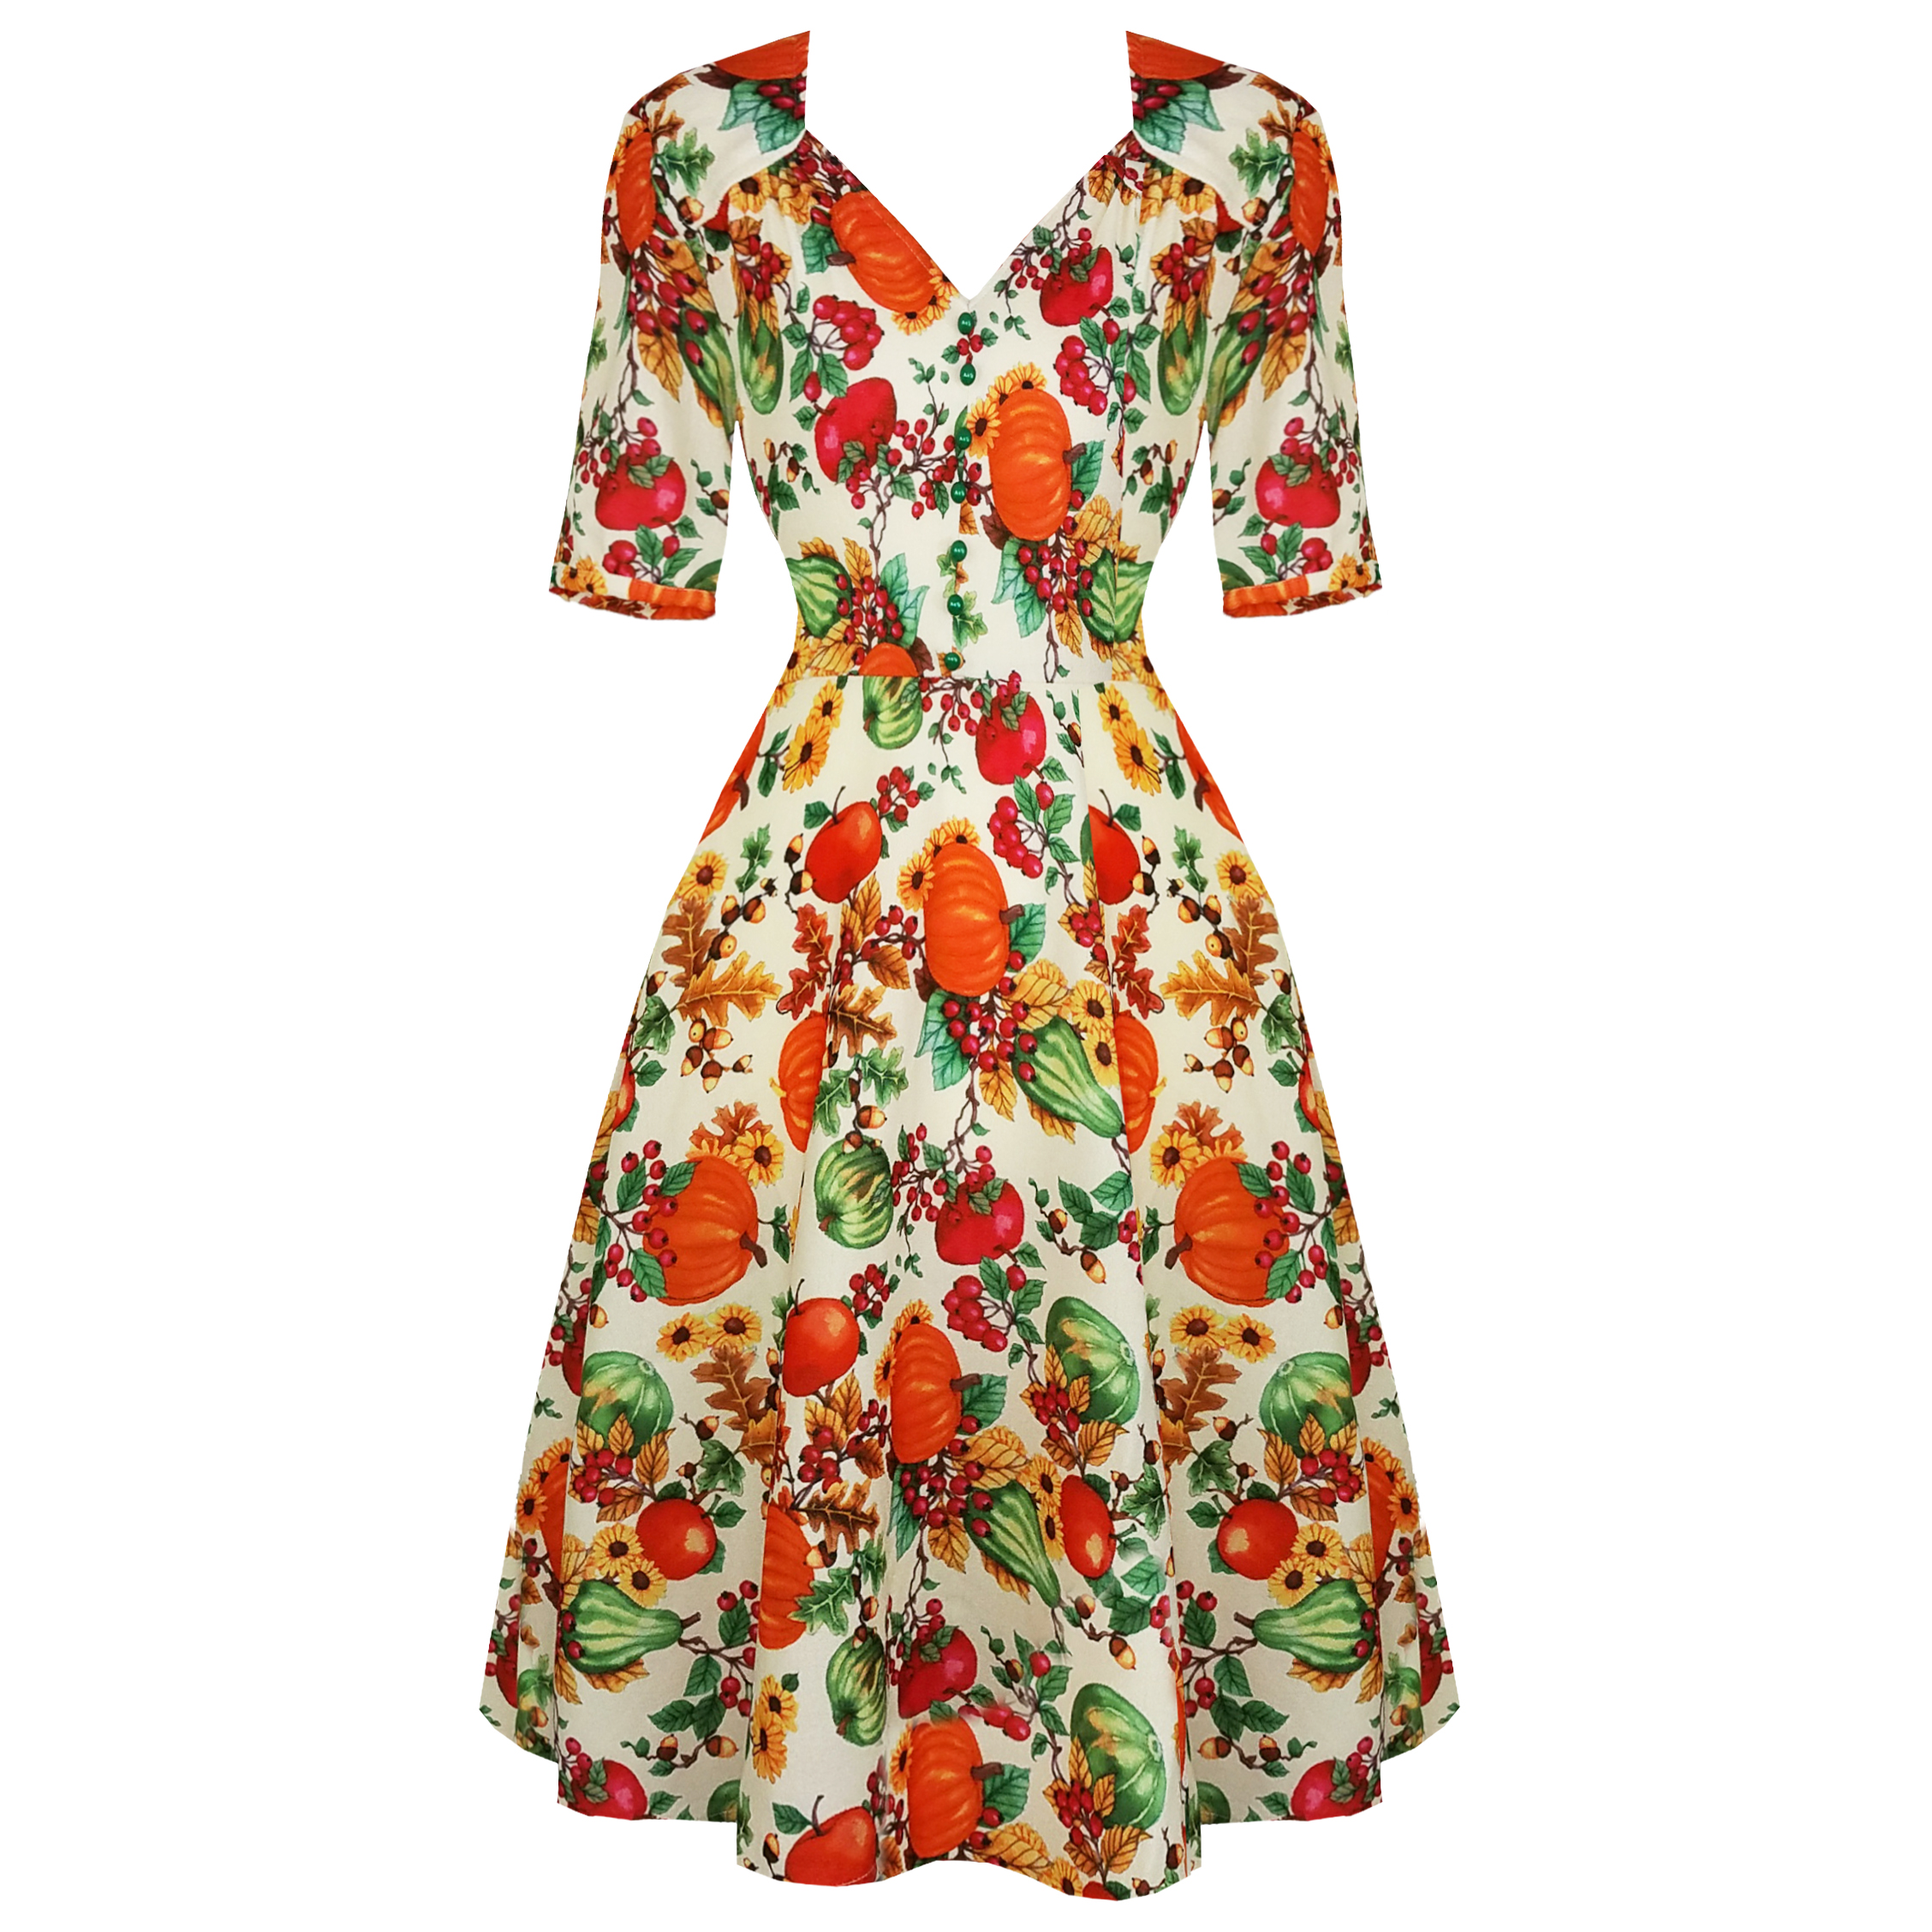 40s style dresses uk next day delivery